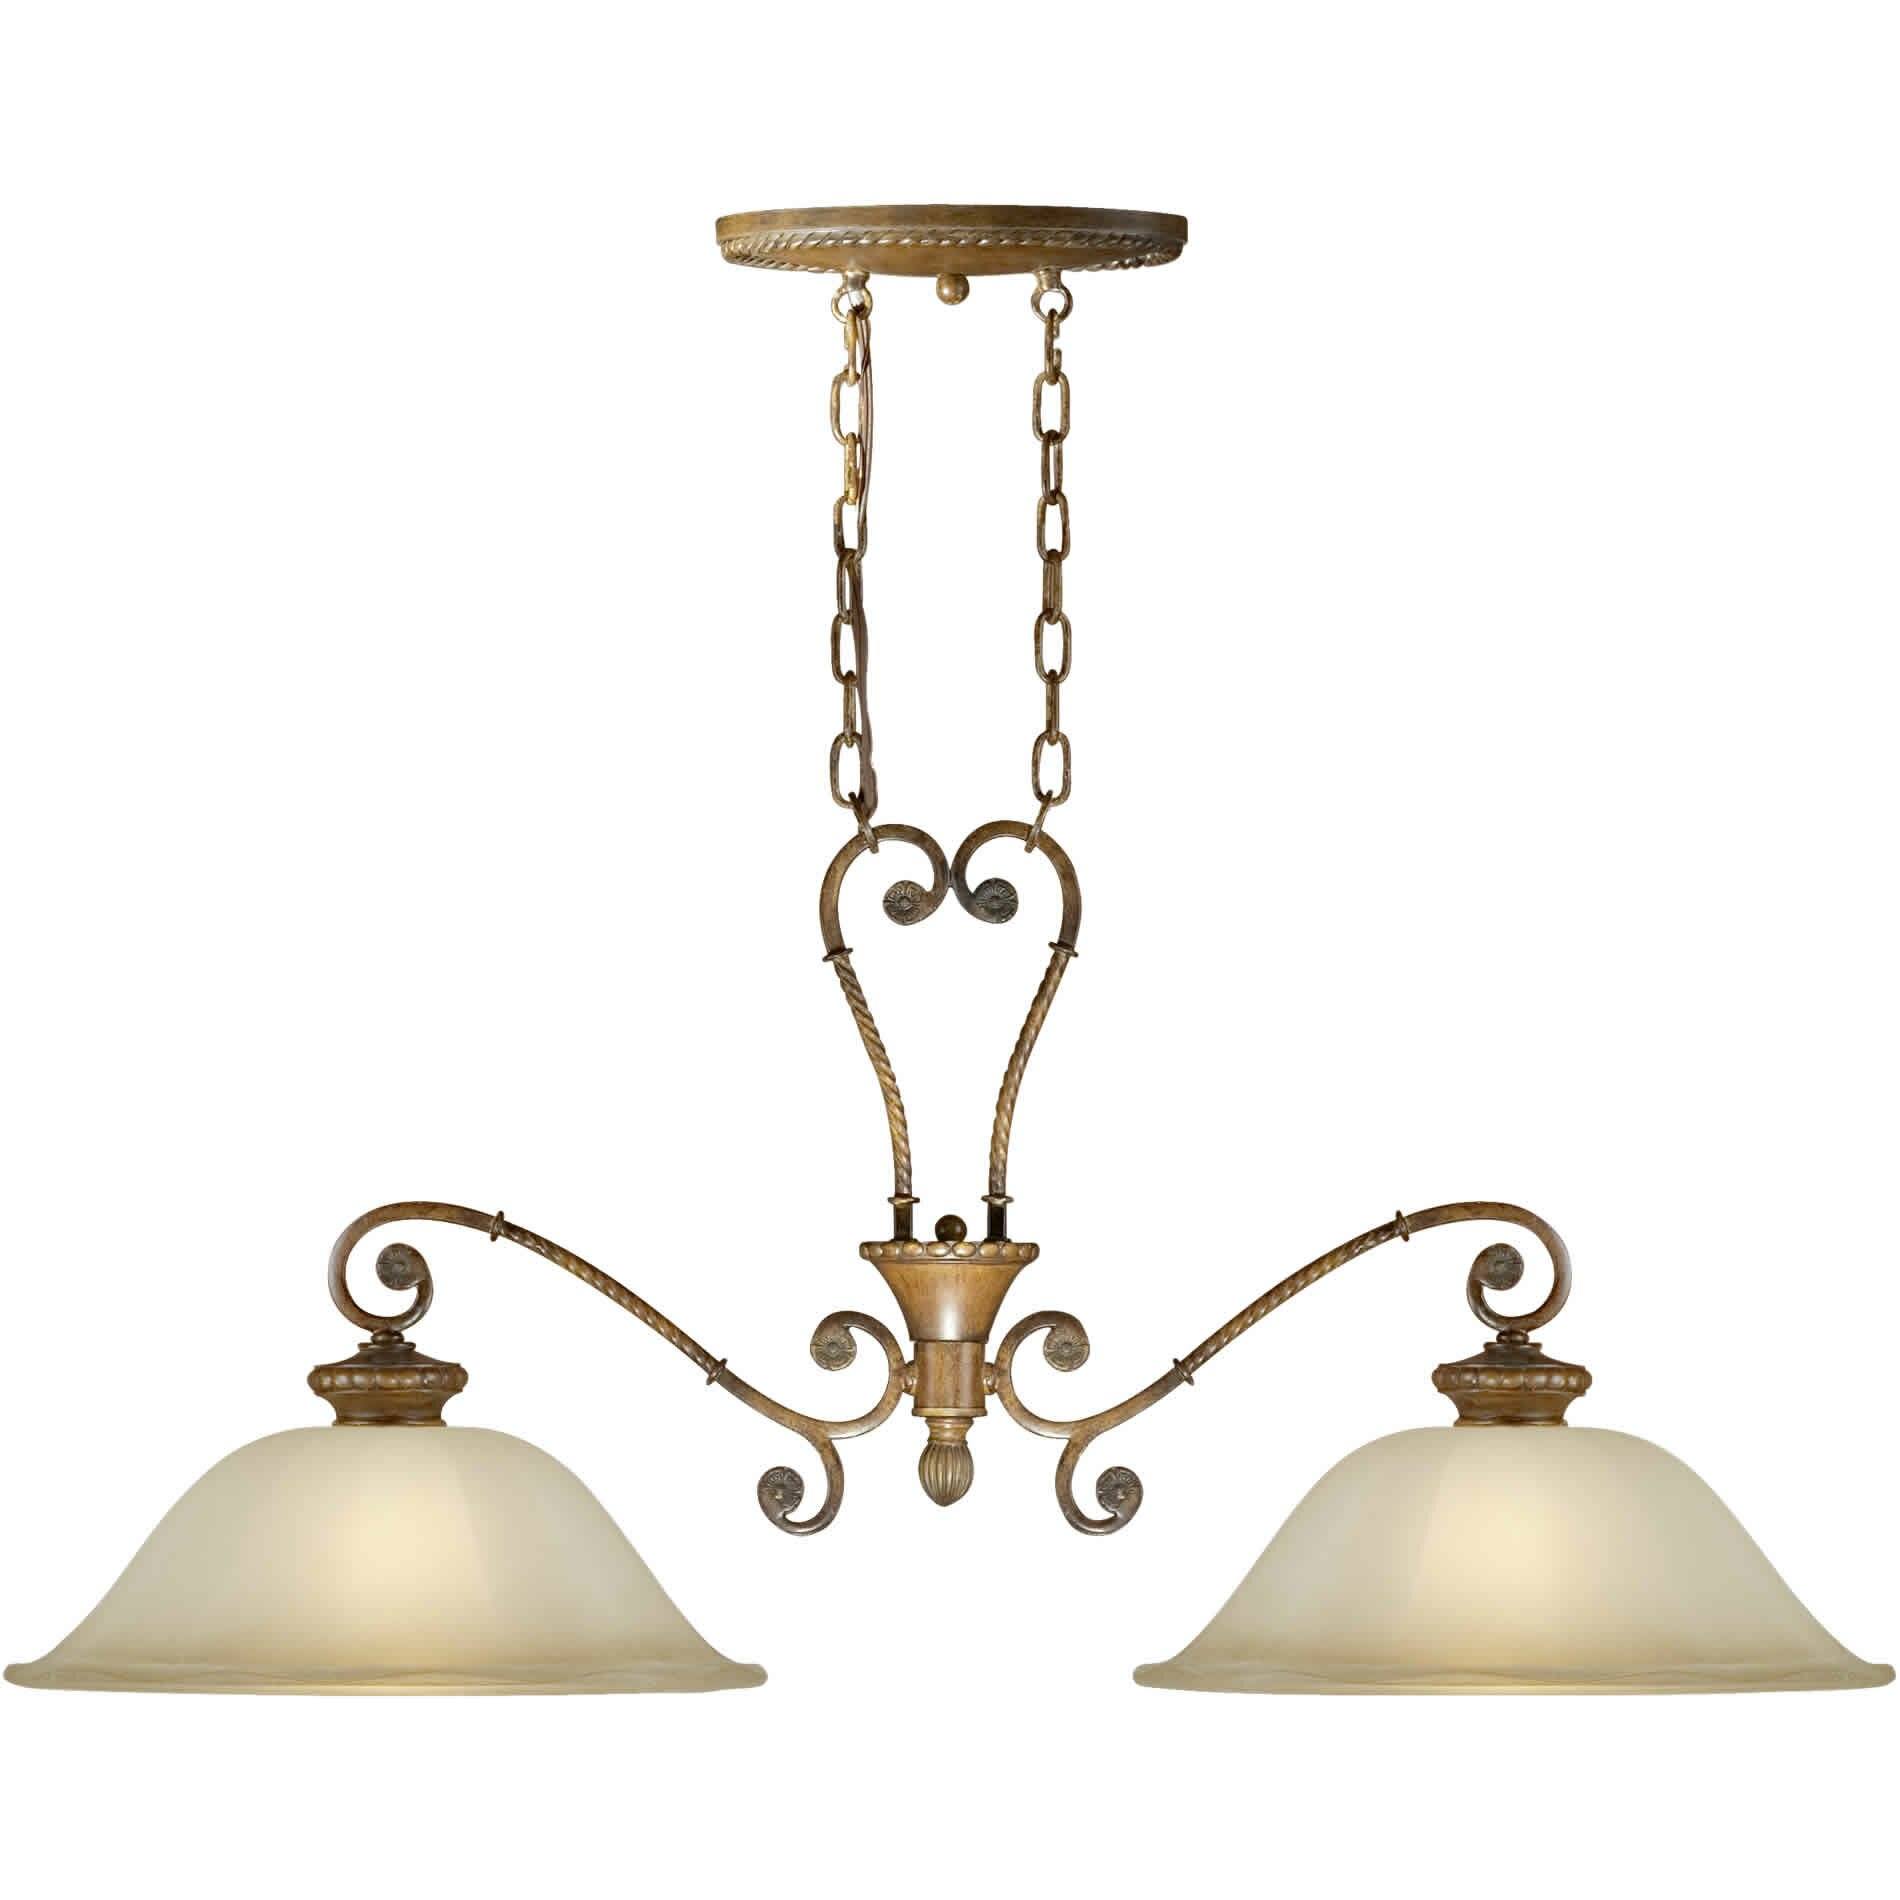 Two Light Island Pendant With Umber Shade In Rustic Sienna